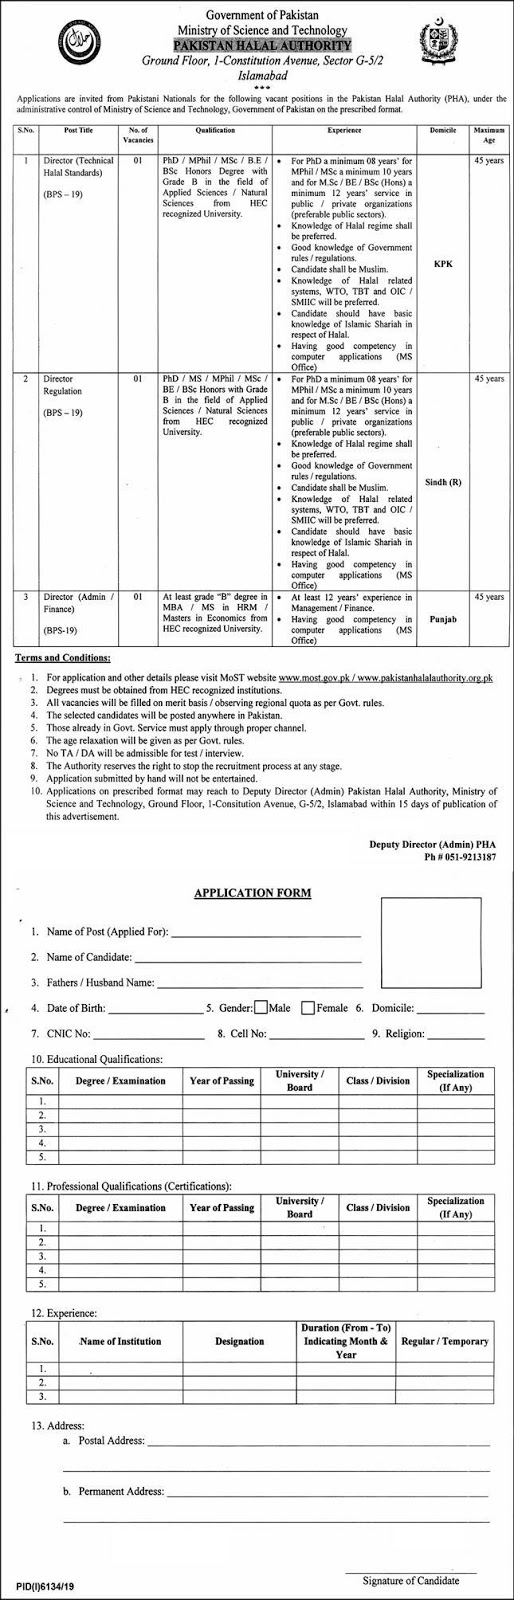 Ministry of Science and Technology MOST Management Posts Islamabad 2020